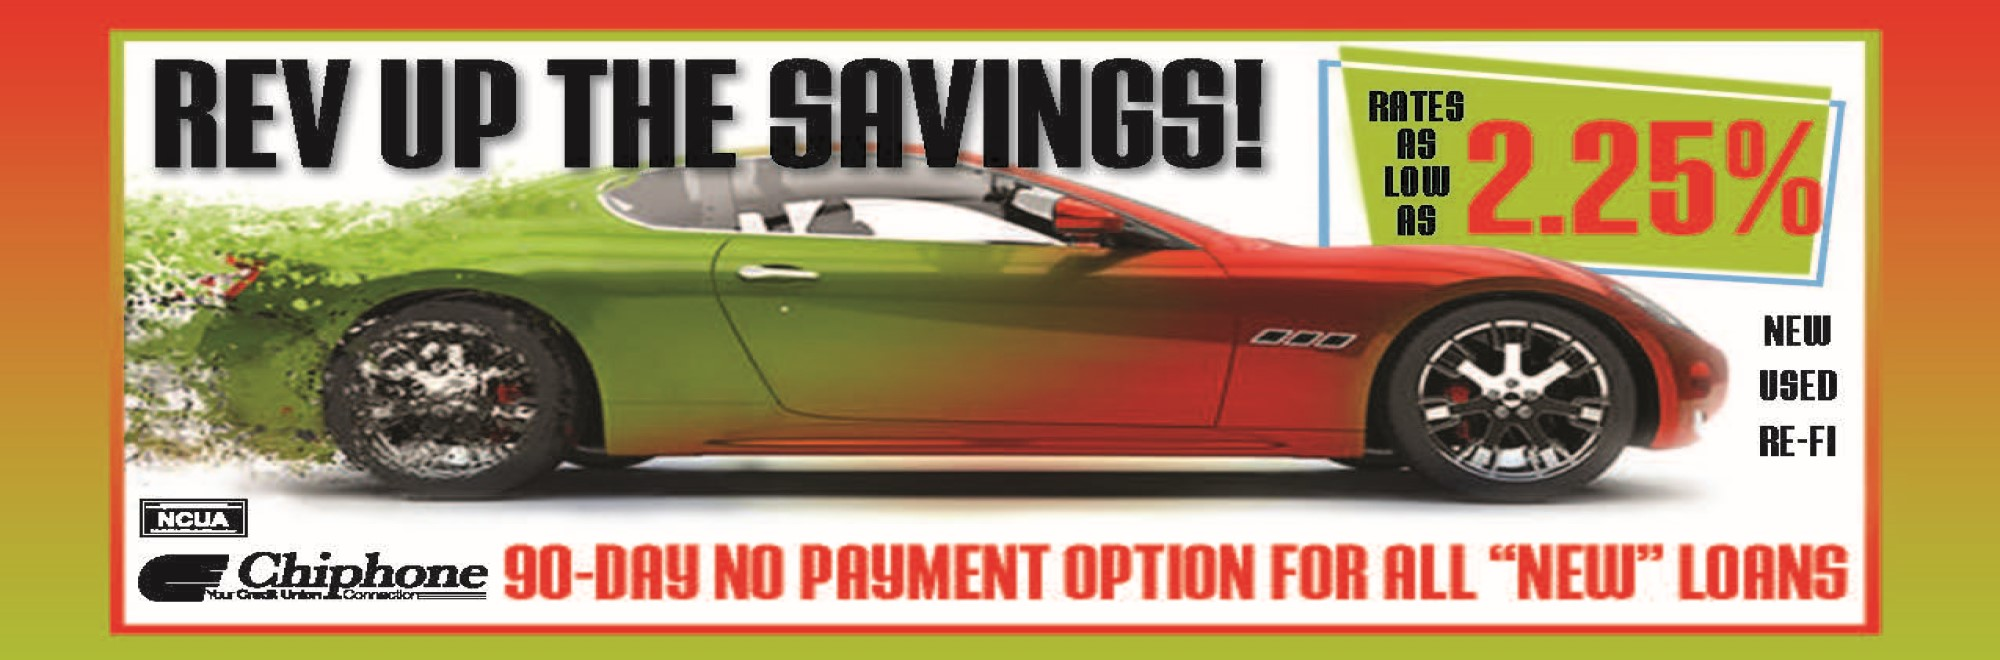 REV UP YOUR SAVINGS WITH OUR AUTO LOAN SPECIAL!